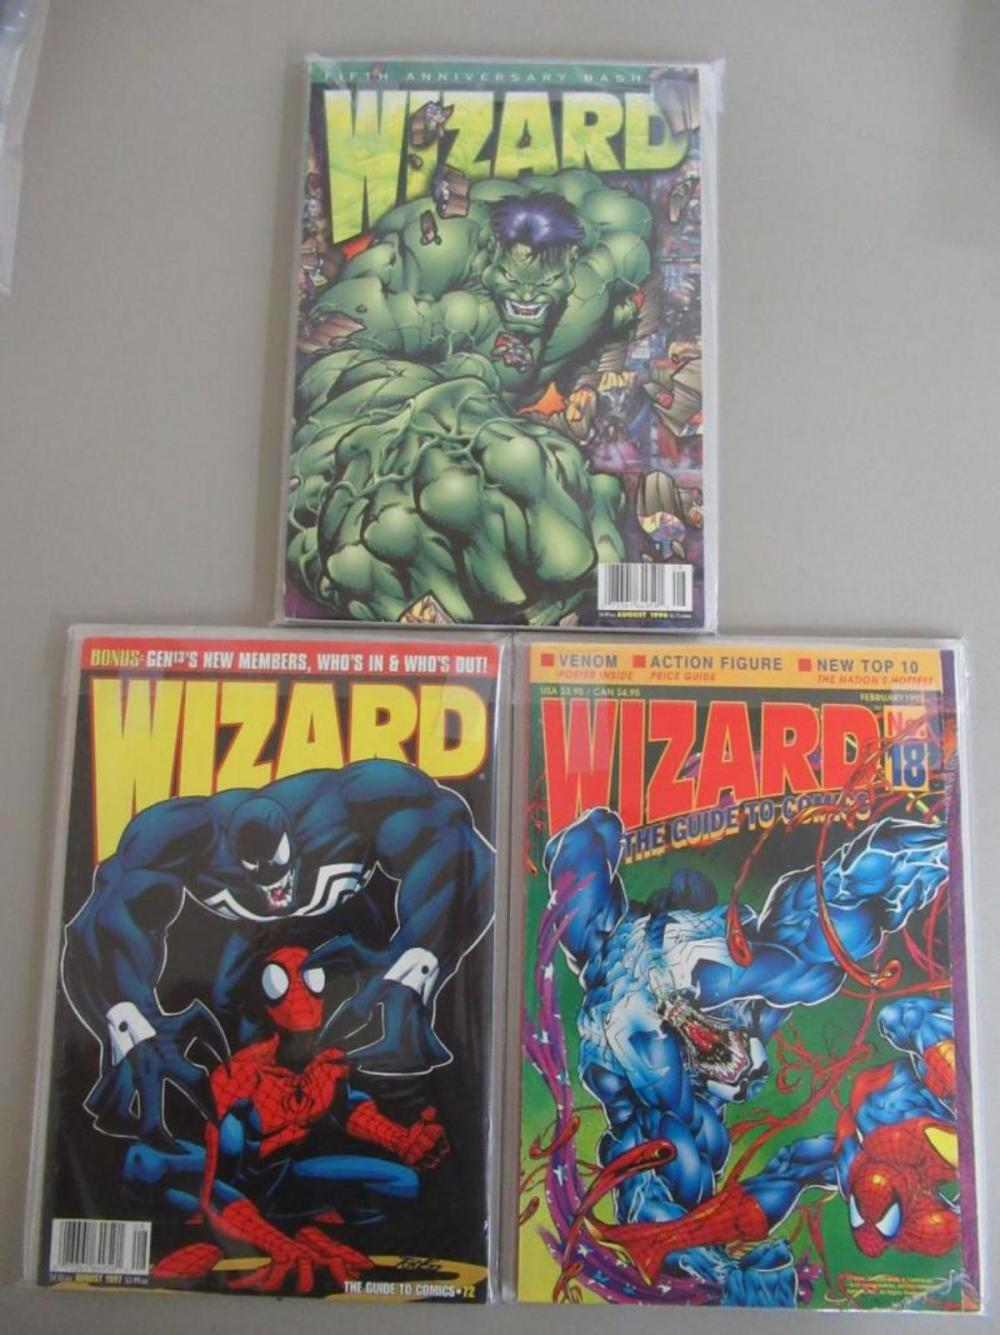 3 Wizard Graphic Novels #18, Aug 1997, Aug 1996